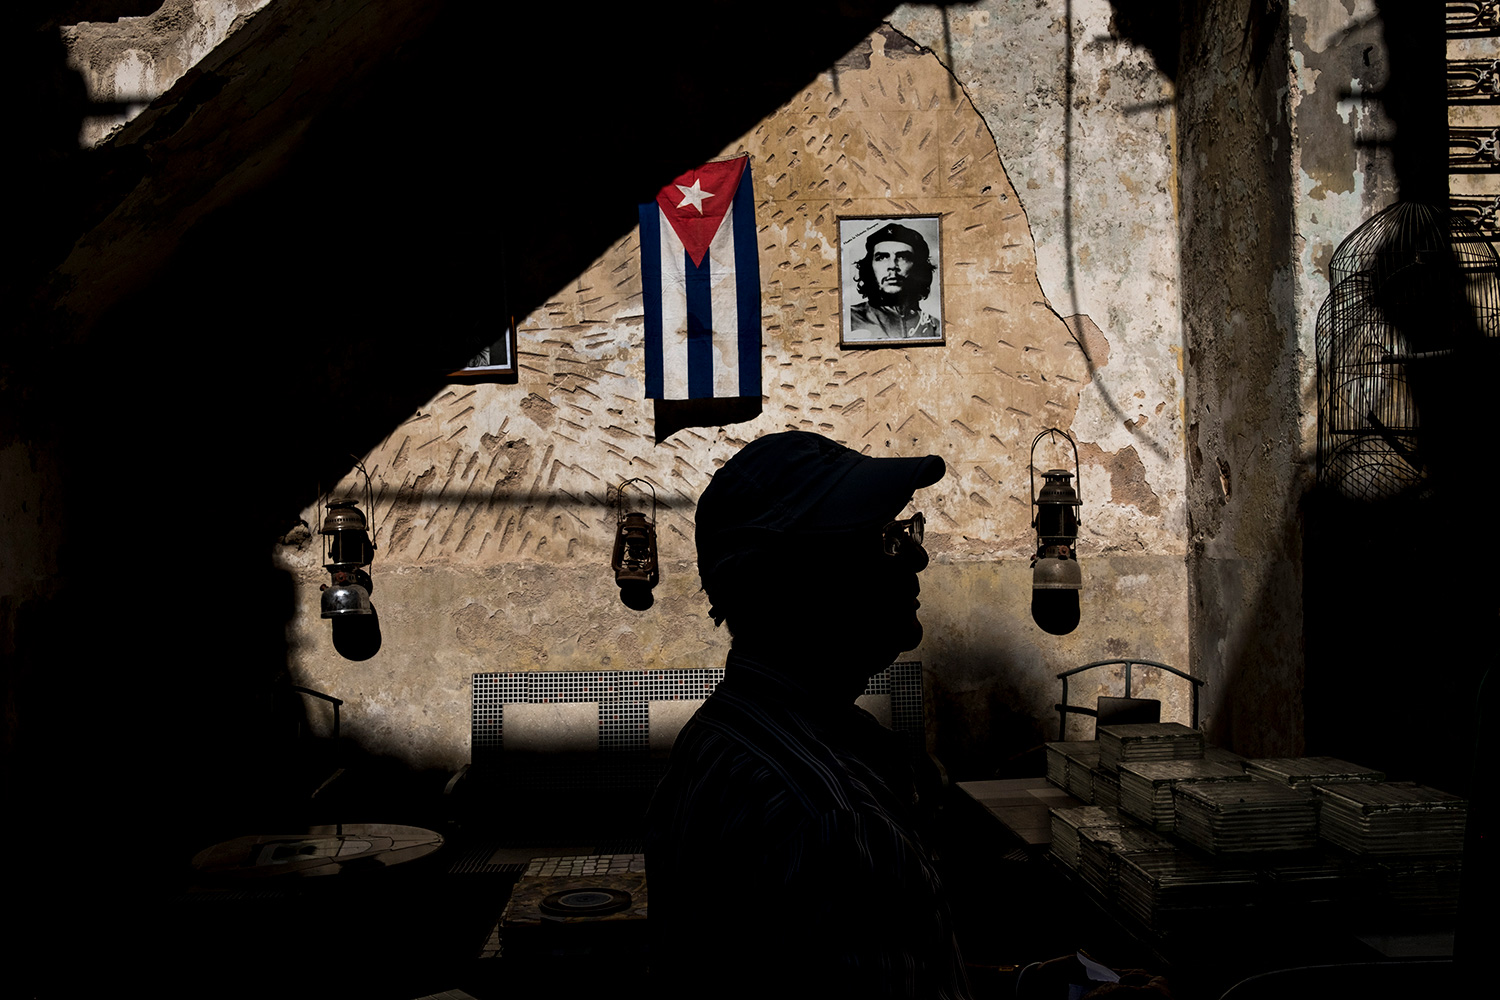 A salesman is silhouetted in a local market in Havana, Cuba.